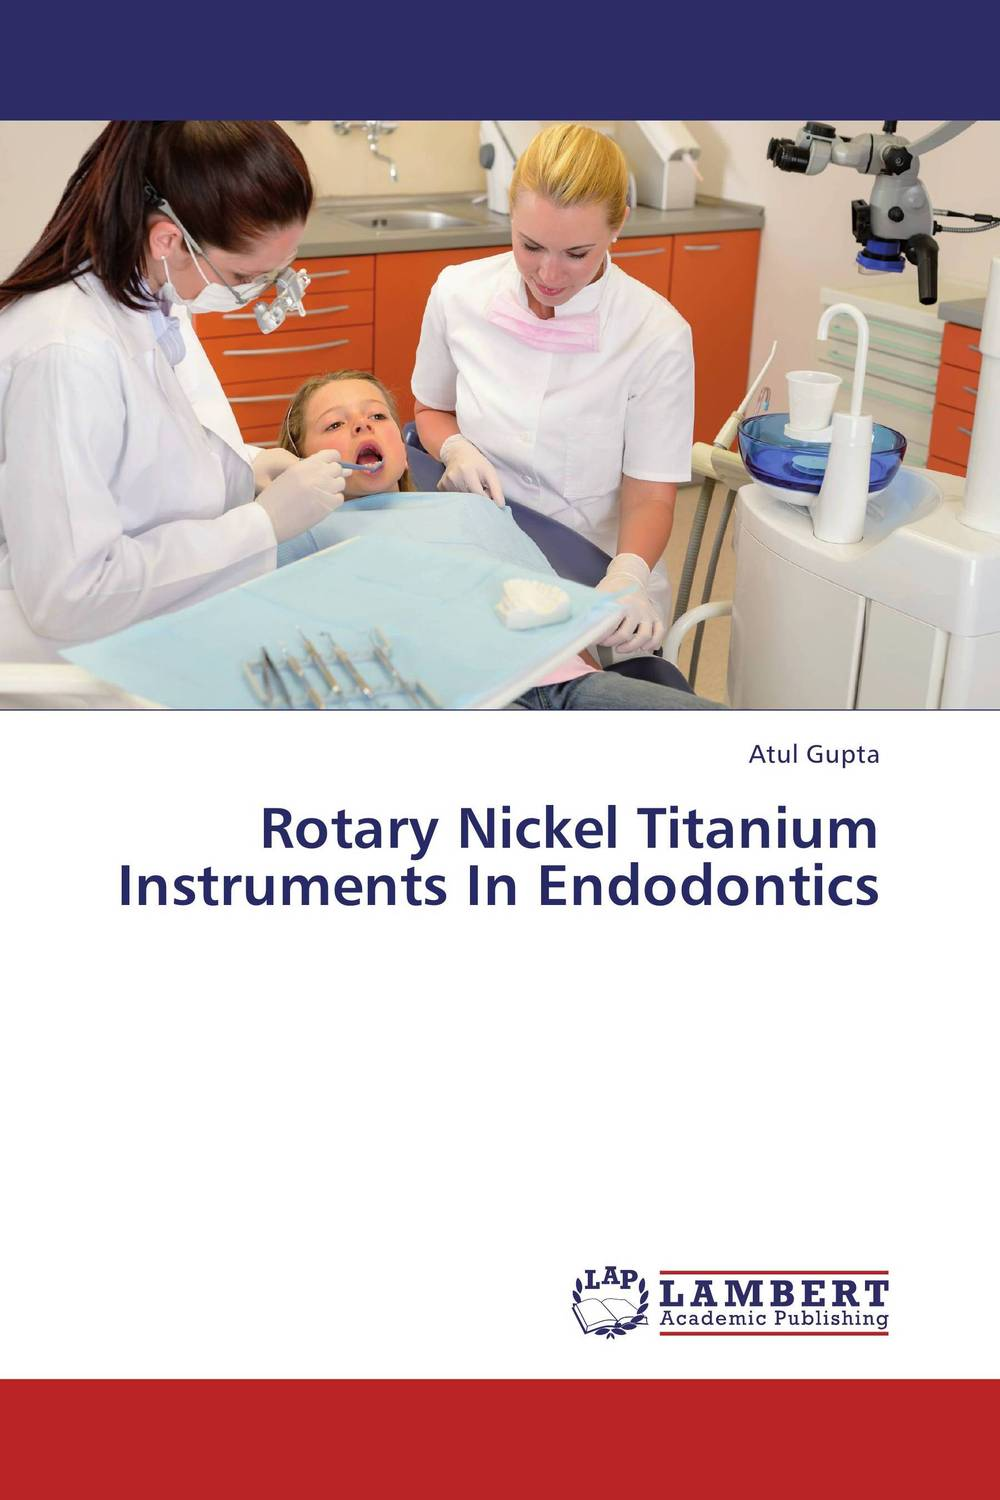 Rotary Nickel Titanium Instruments In Endodontics the teeth with root canal students to practice root canal preparation and filling actually